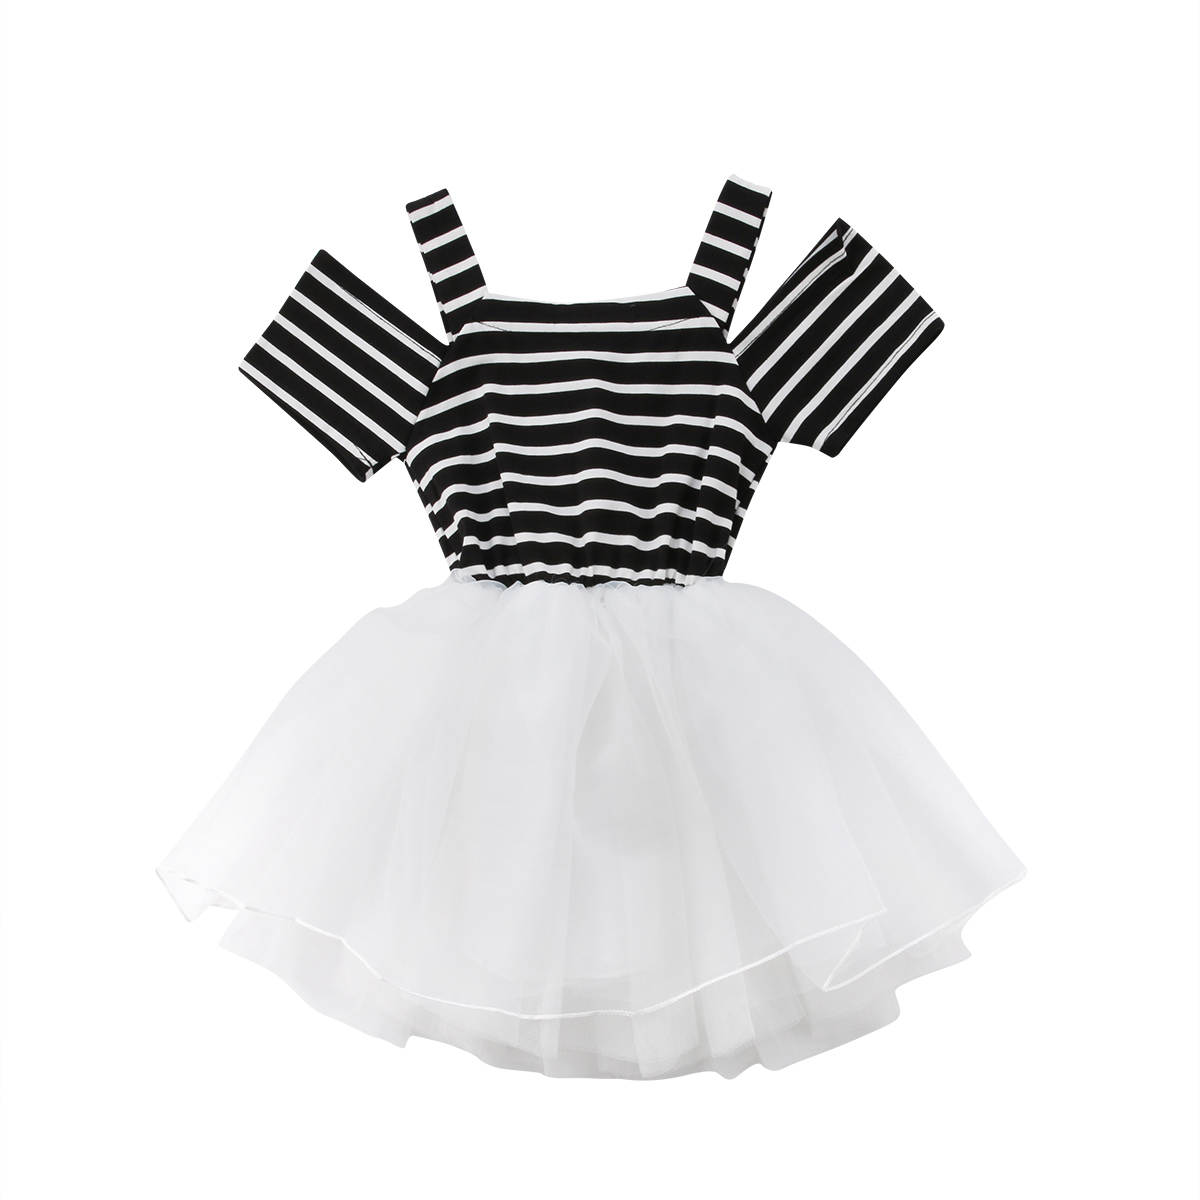 NEWEST 2018 HOT SALE Toddler Baby Girls Short Sleeve Black White Striped Princess Ball Gown Dress 0-5Y